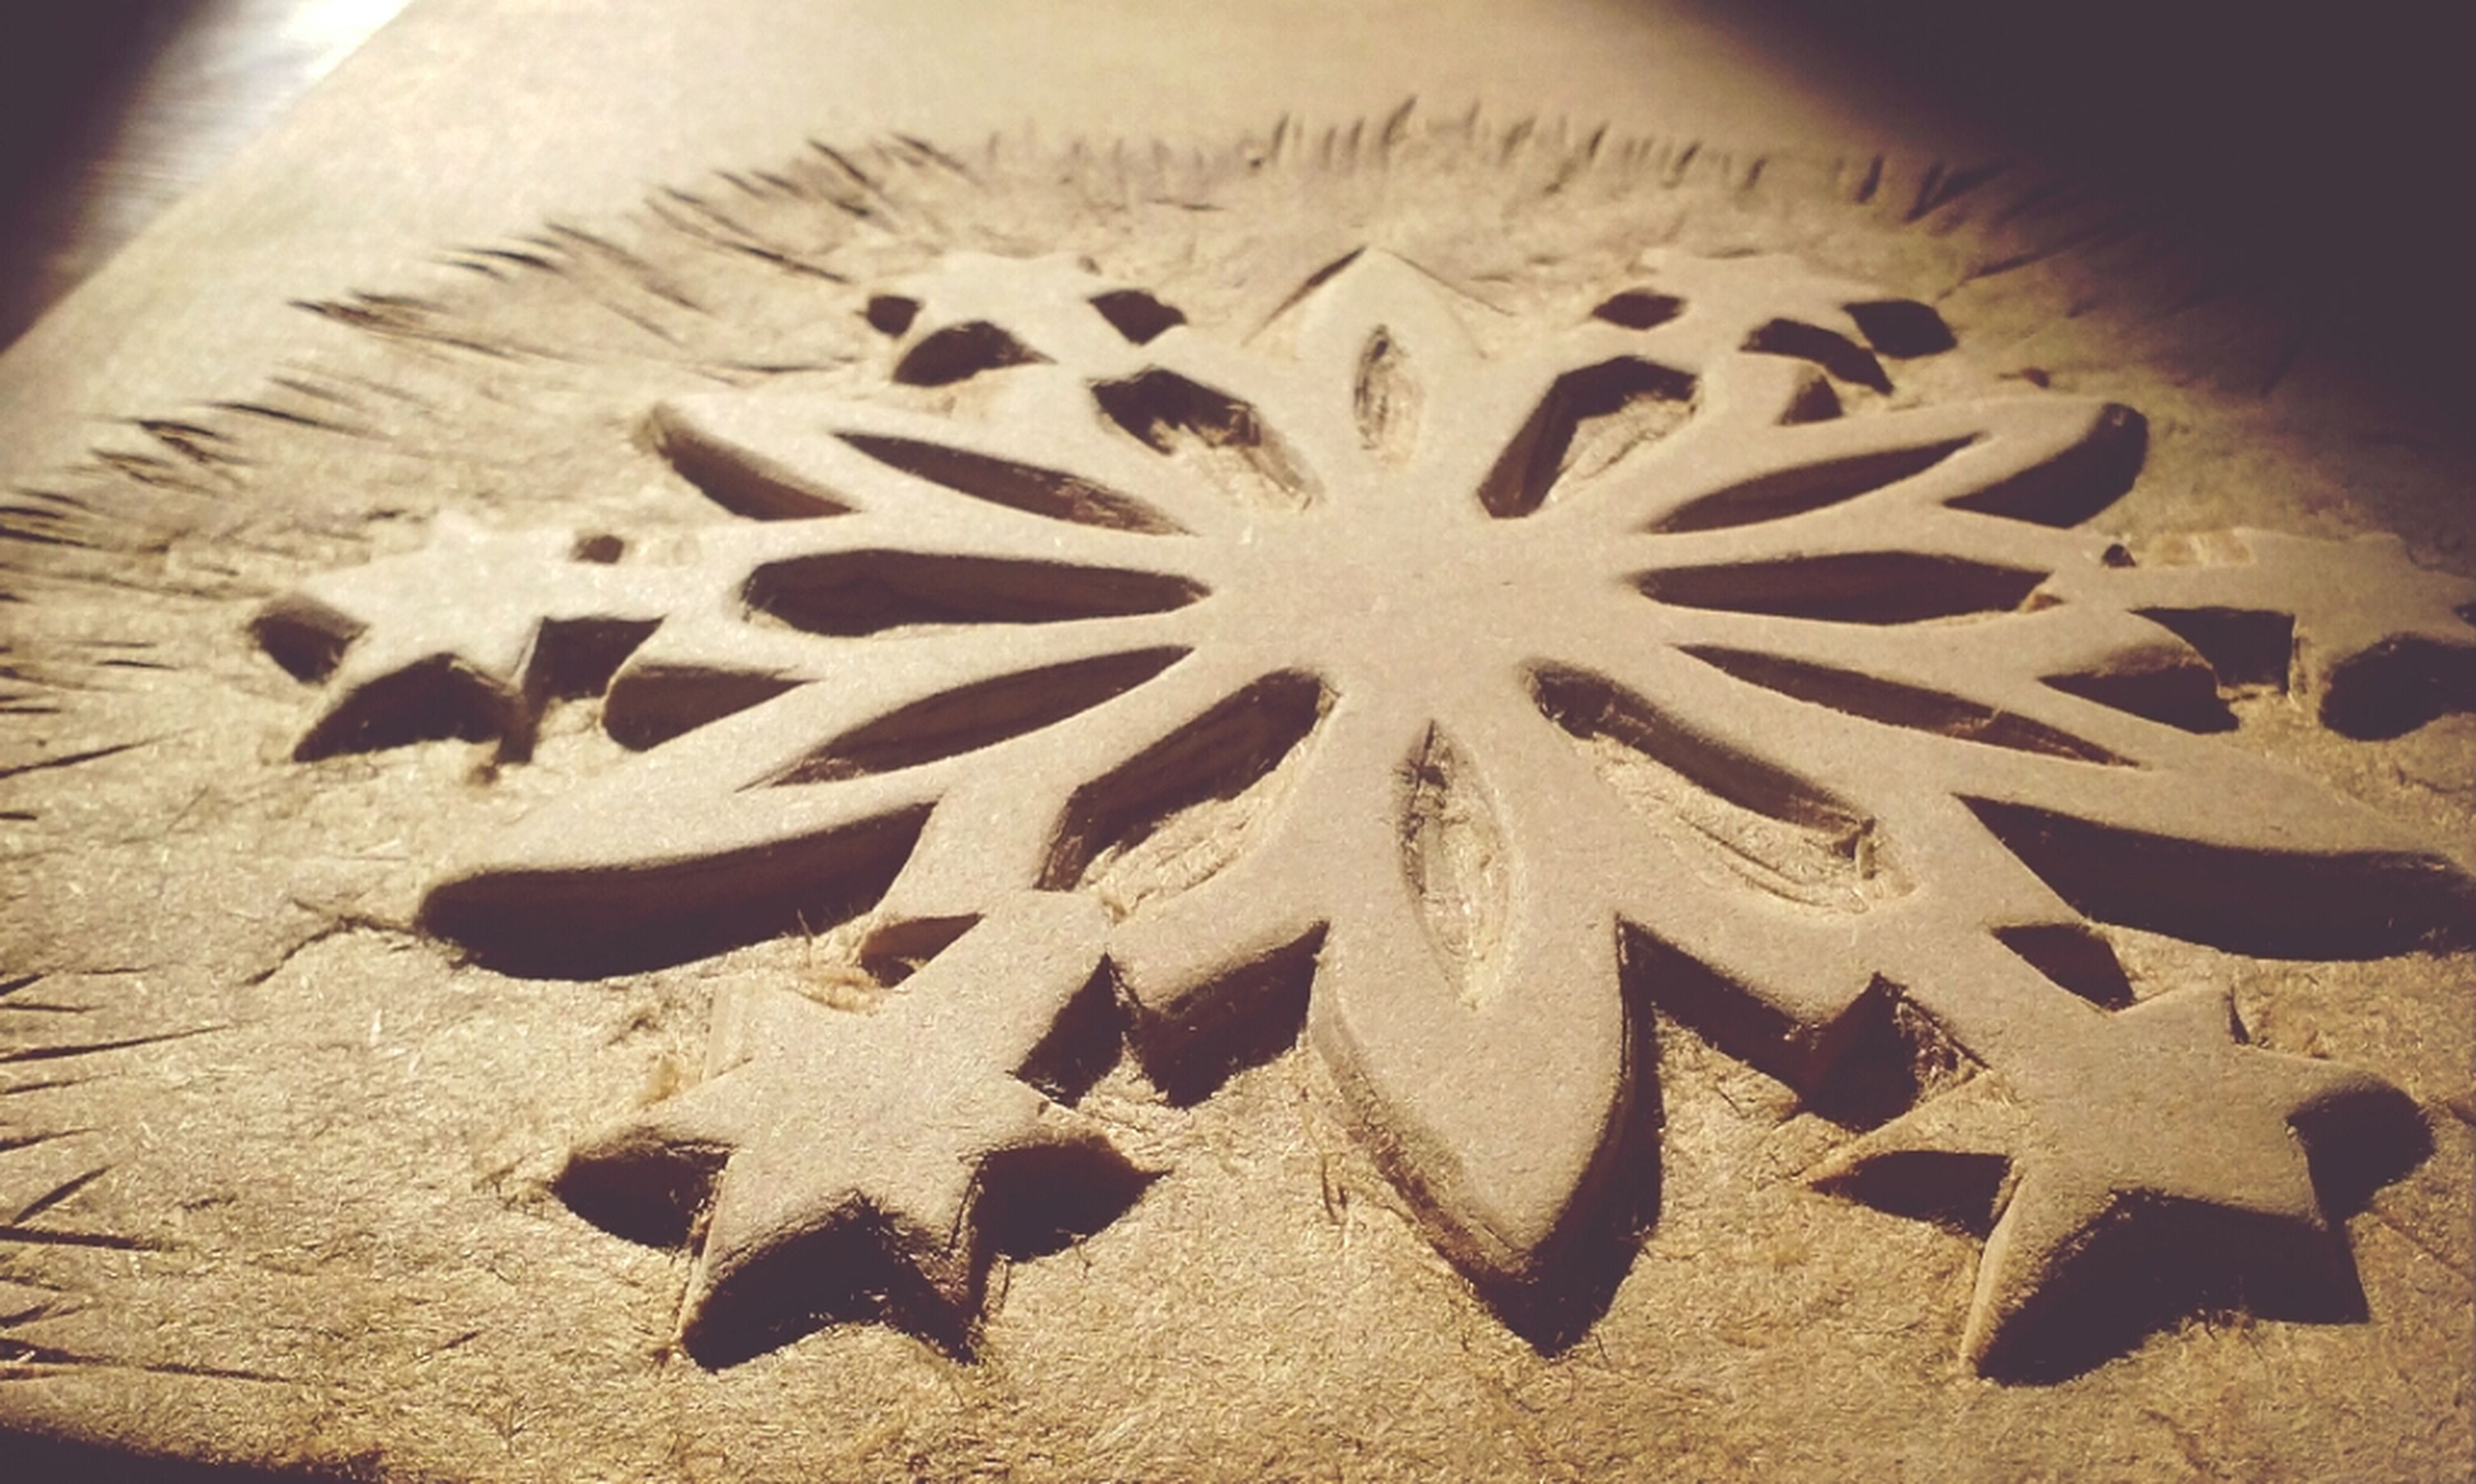 art and craft, close-up, art, creativity, pattern, no people, indoors, still life, craft, design, animal representation, shape, high angle view, star shape, day, sand, carving - craft product, textured, sunlight